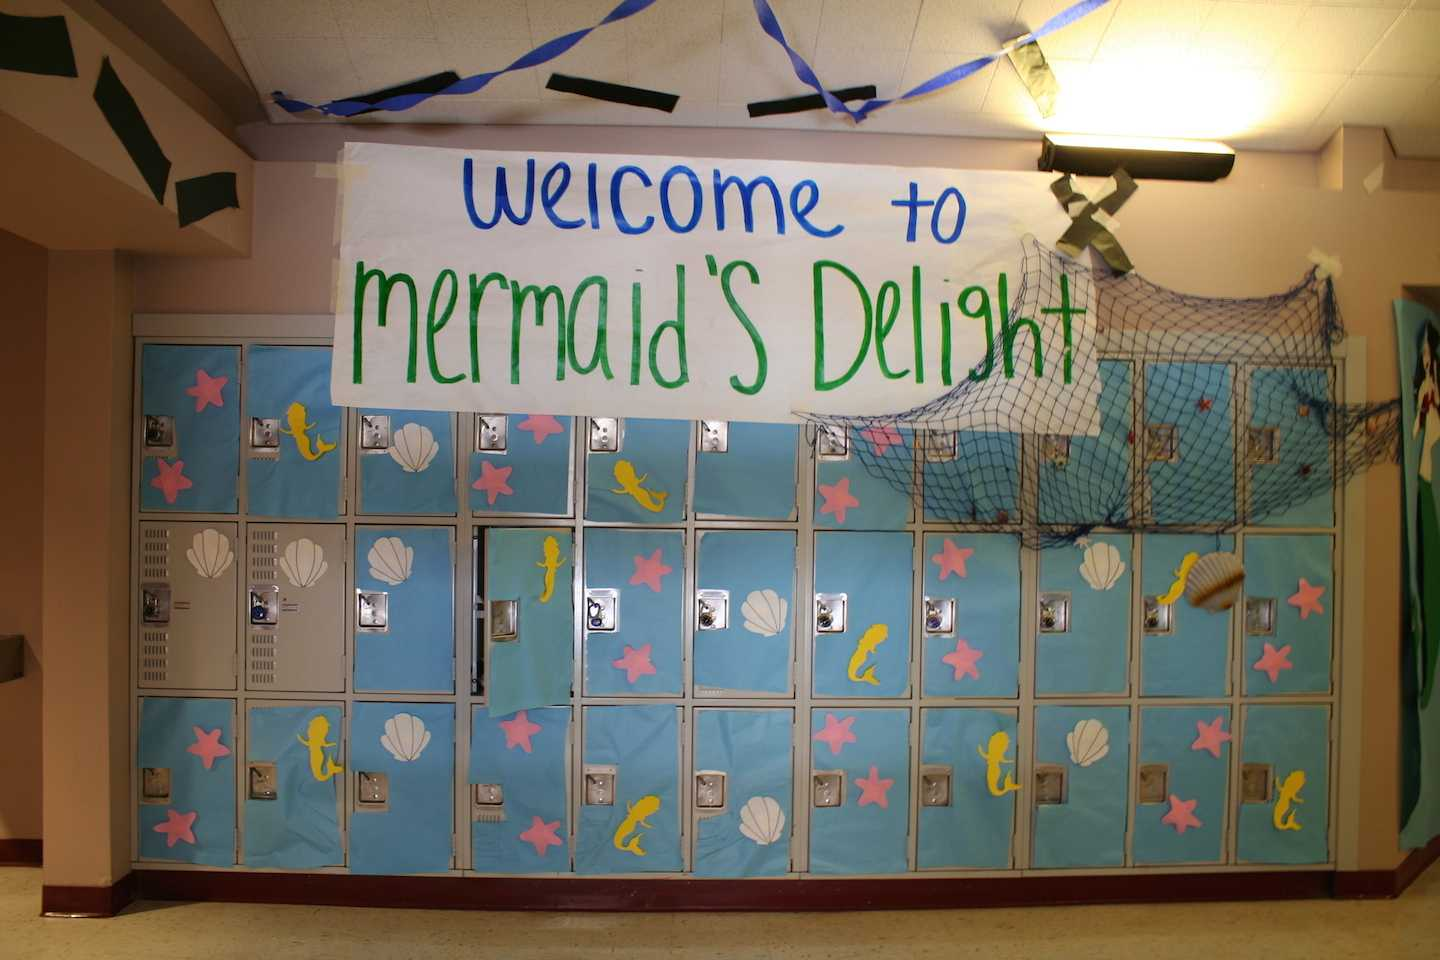 Juniors+with+Peter+Pan+welcome+students+and+teachers+to+Mermaid%27s+Delight.+They+added+details+on+the+lockers+as+well.